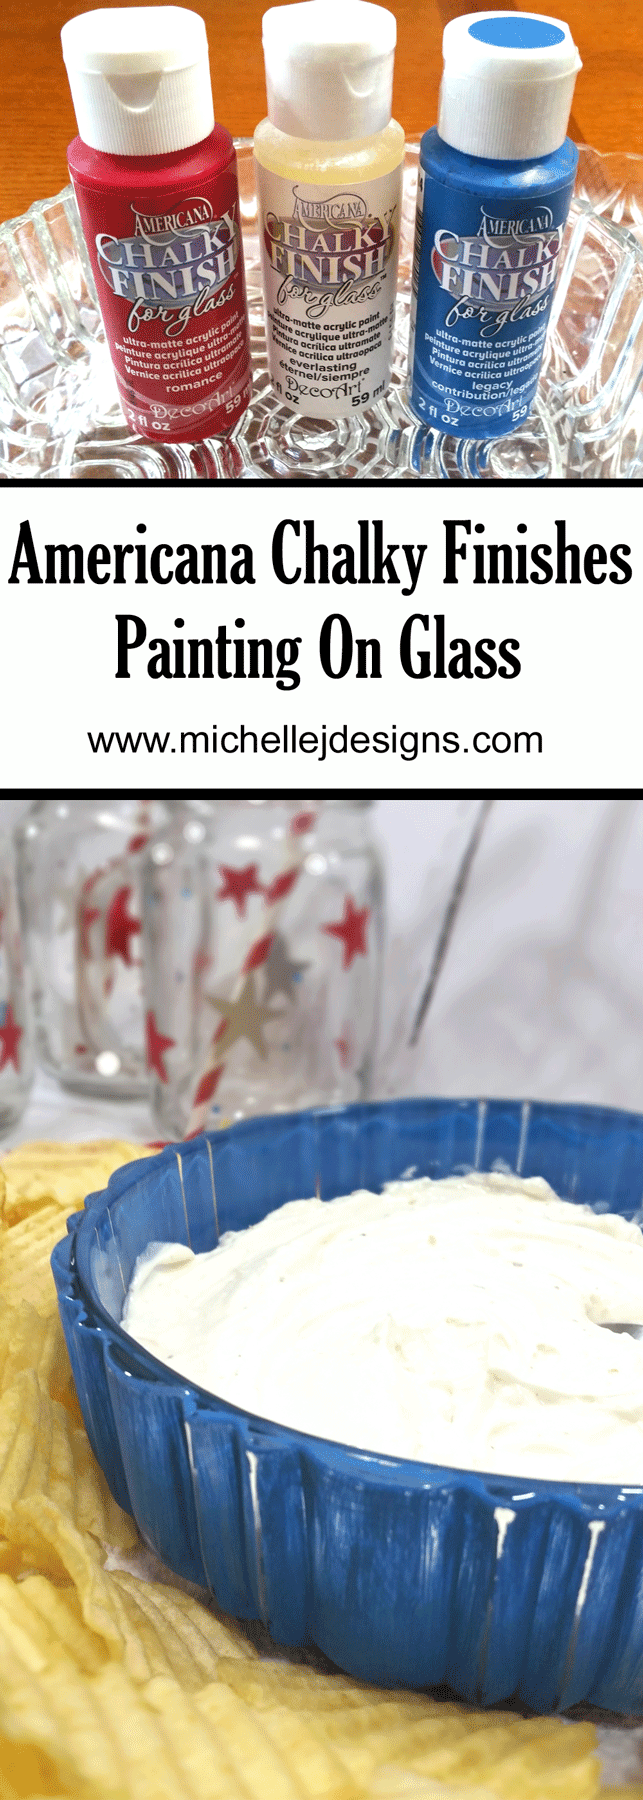 You can add color and interest to any glass piece using chalk paint for glass from DecoArt. www.michellejdesigns.com